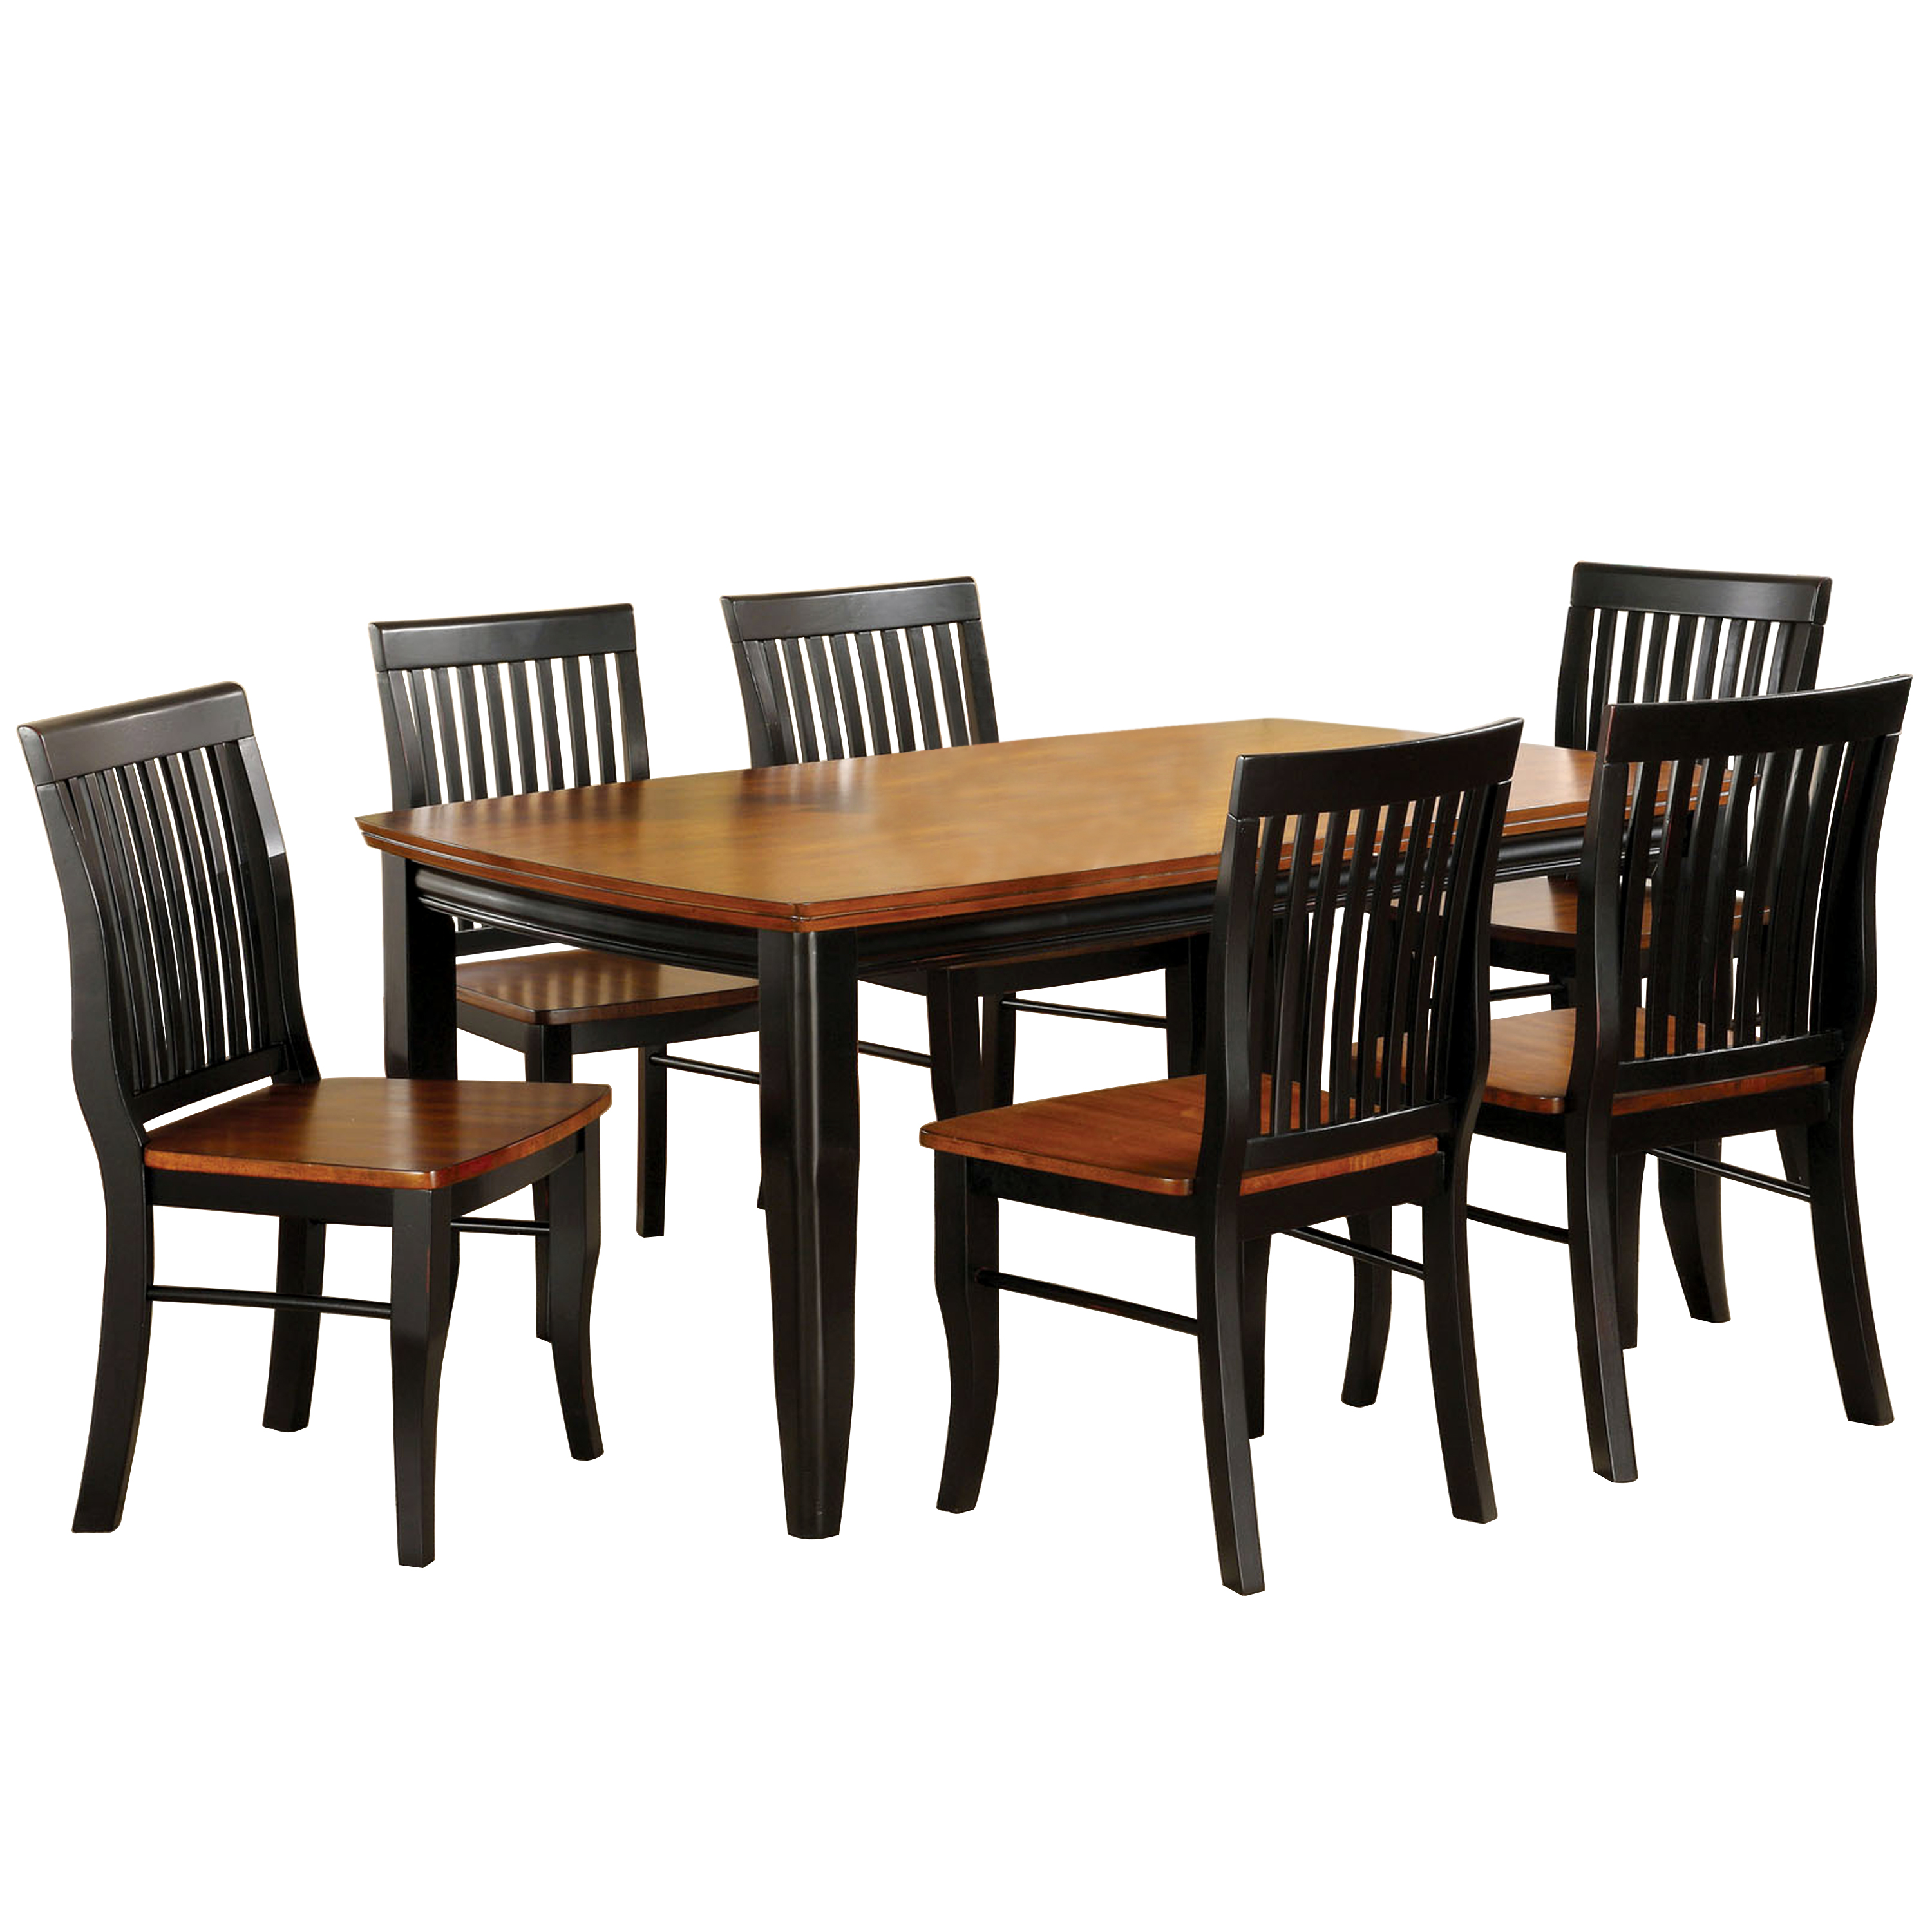 Earlham I 7-Piece Dining Set, Black/Oak